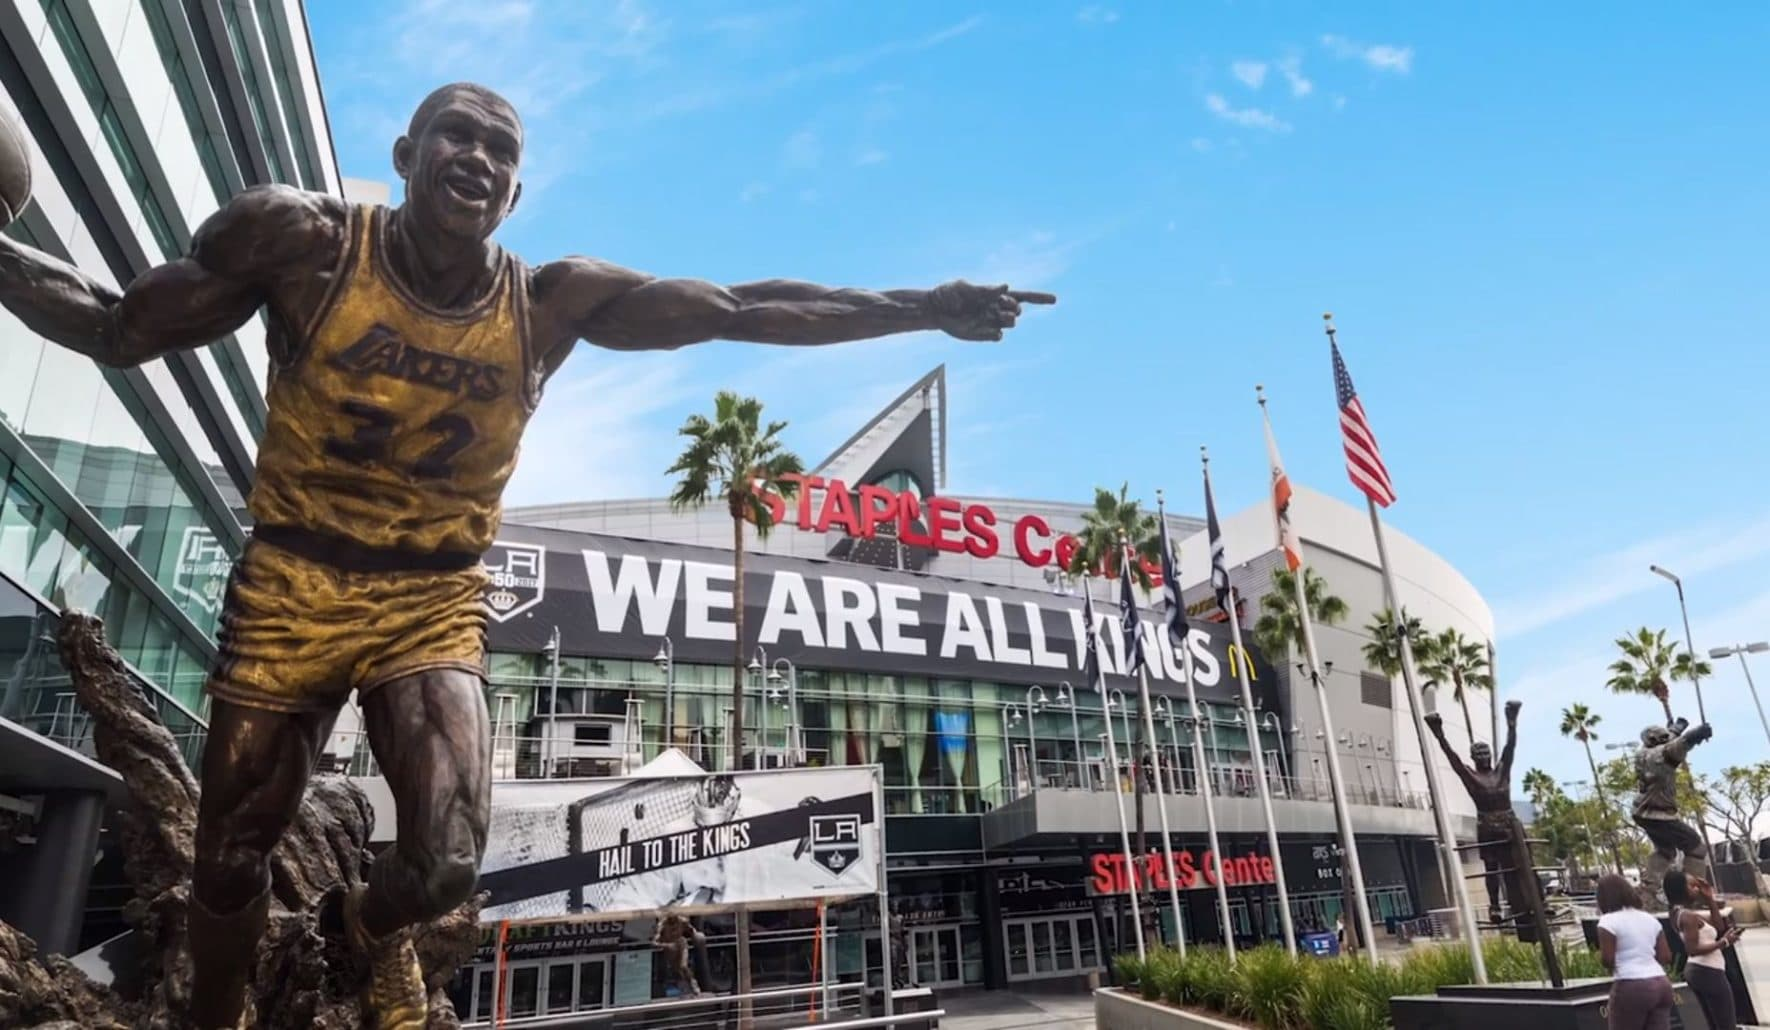 Statue of a Lakers player outside of Staples Center